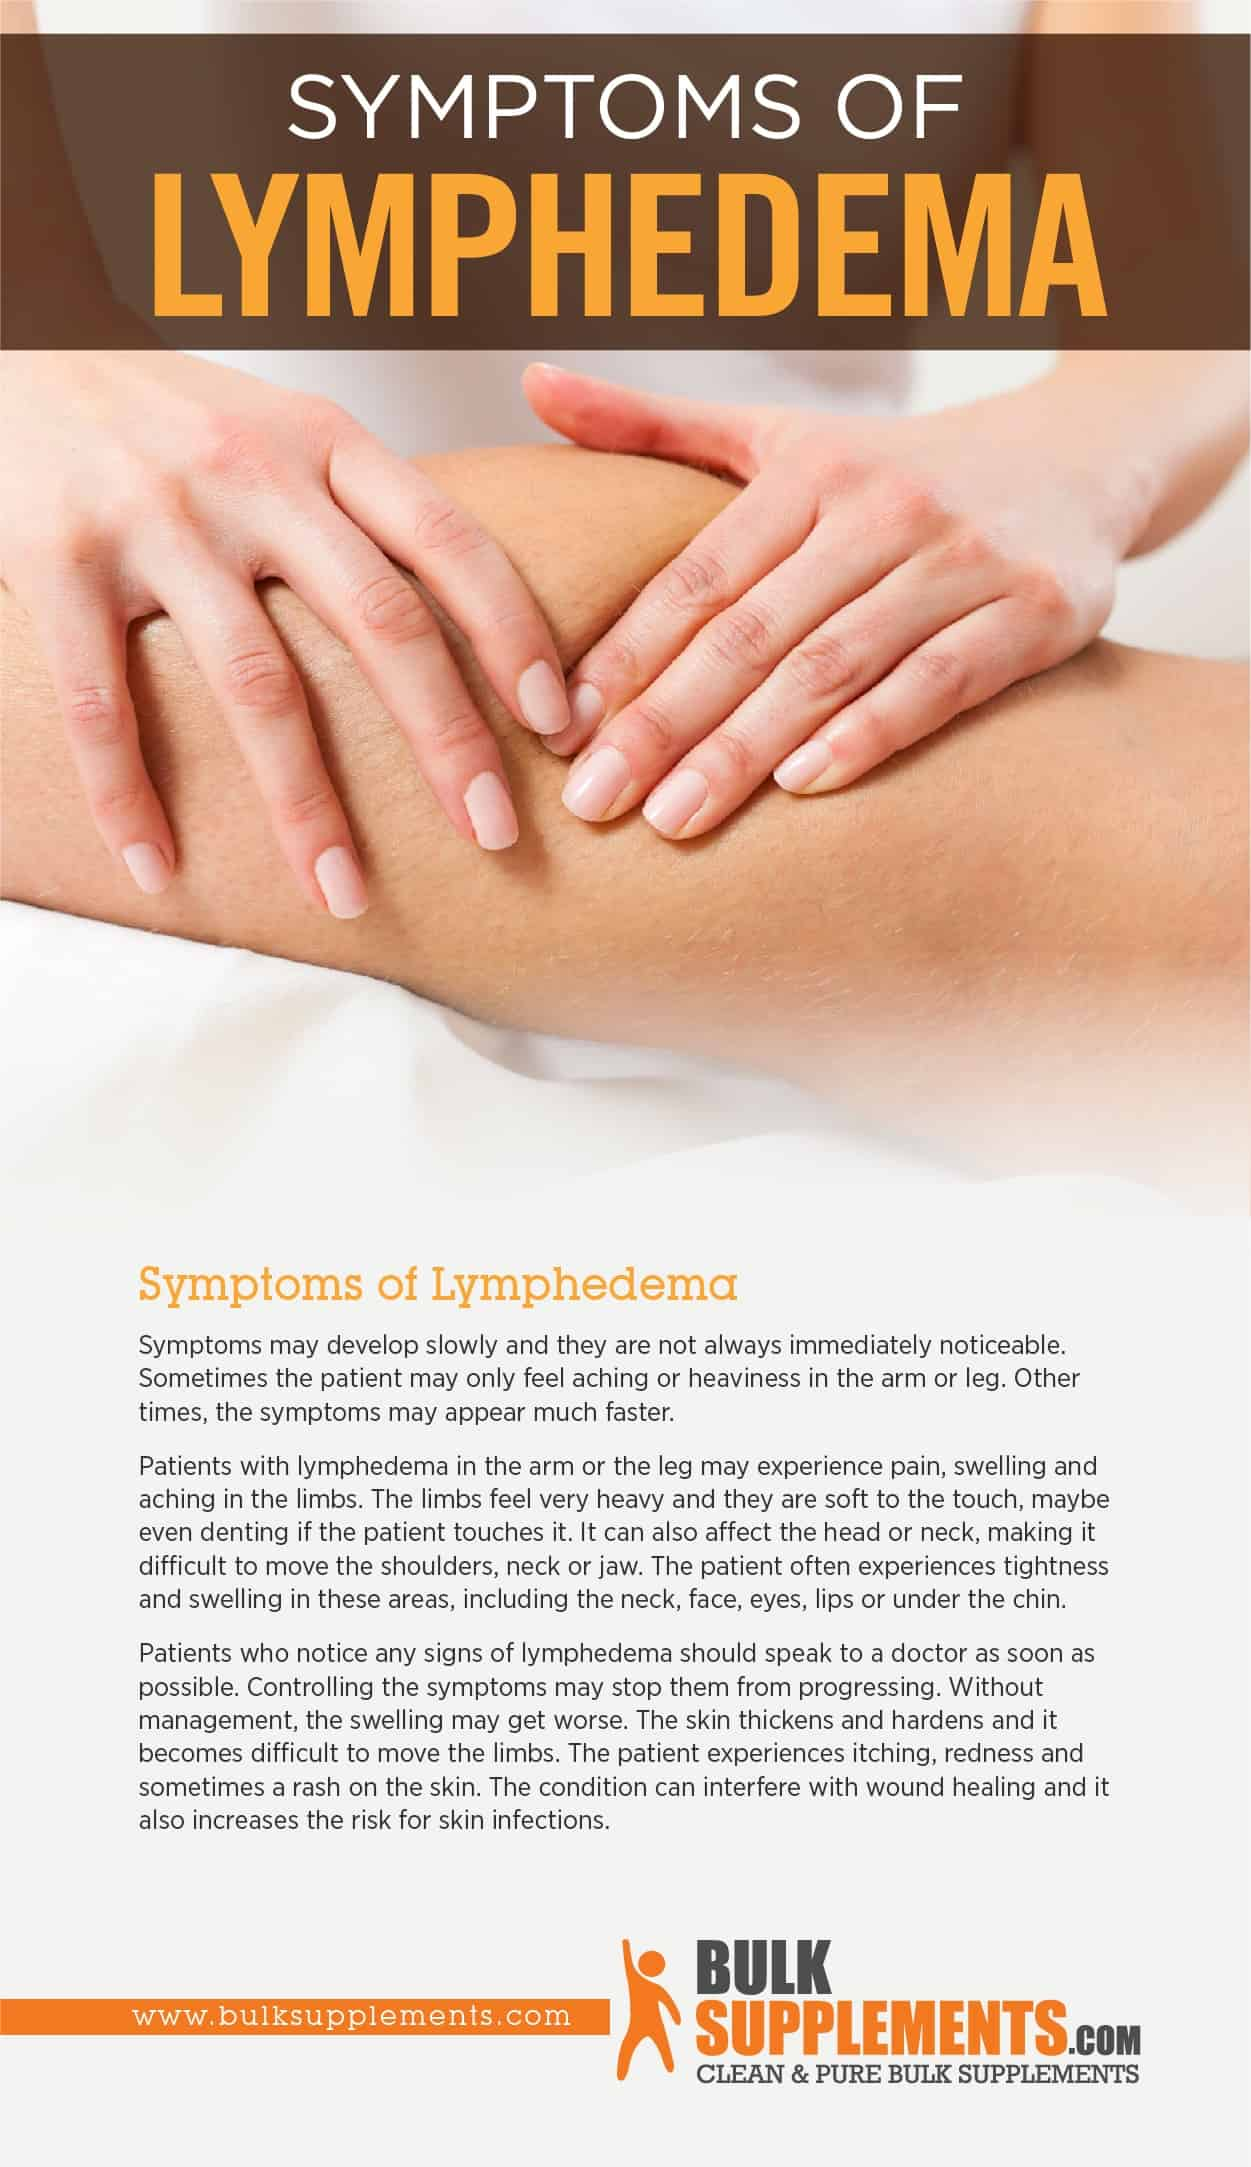 Symptoms of Lymphedema